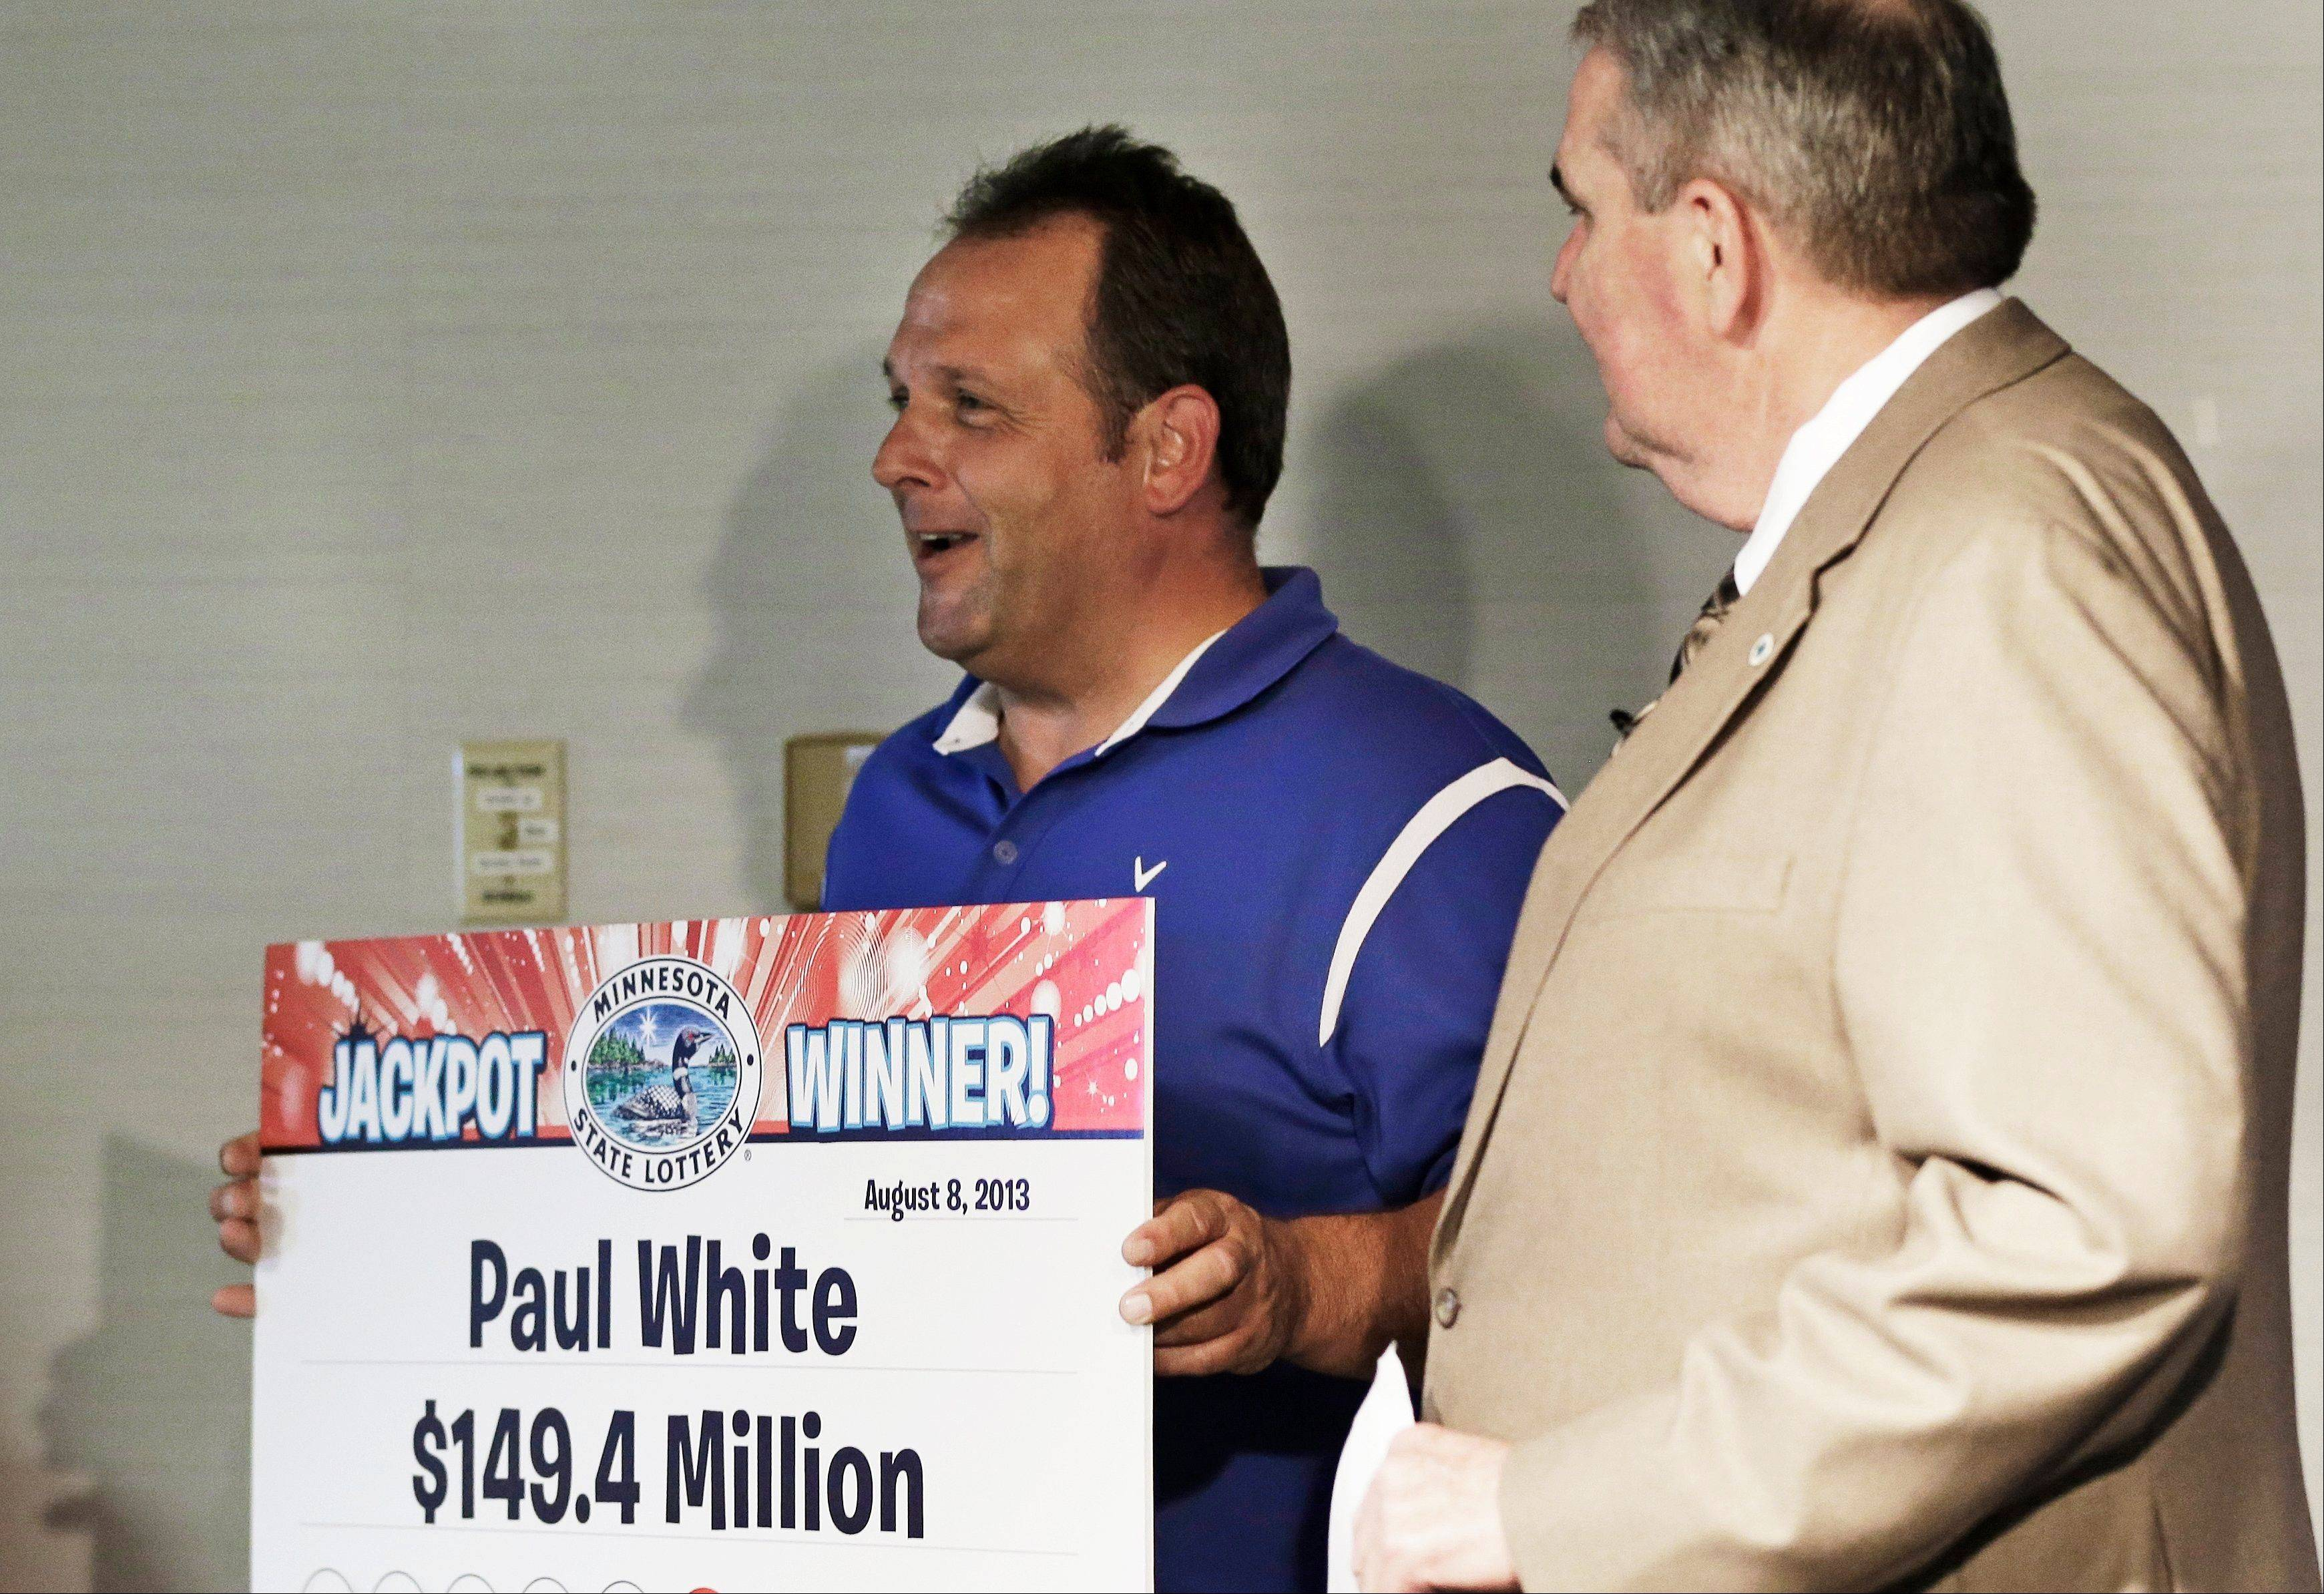 Paul White, of Ham Lake, Minn. holds up his winning amount as Minnesota Lottery executive director Ed Van Petten, right, looks on during news conference after White was announced as one of the winners of the $448.4 million Powerball Jackpot, Thursday, Aug. 8, 2013 in Minneapolis. White's share of the jackpot is $149.4 million. The woman at left is a co-worker friend.